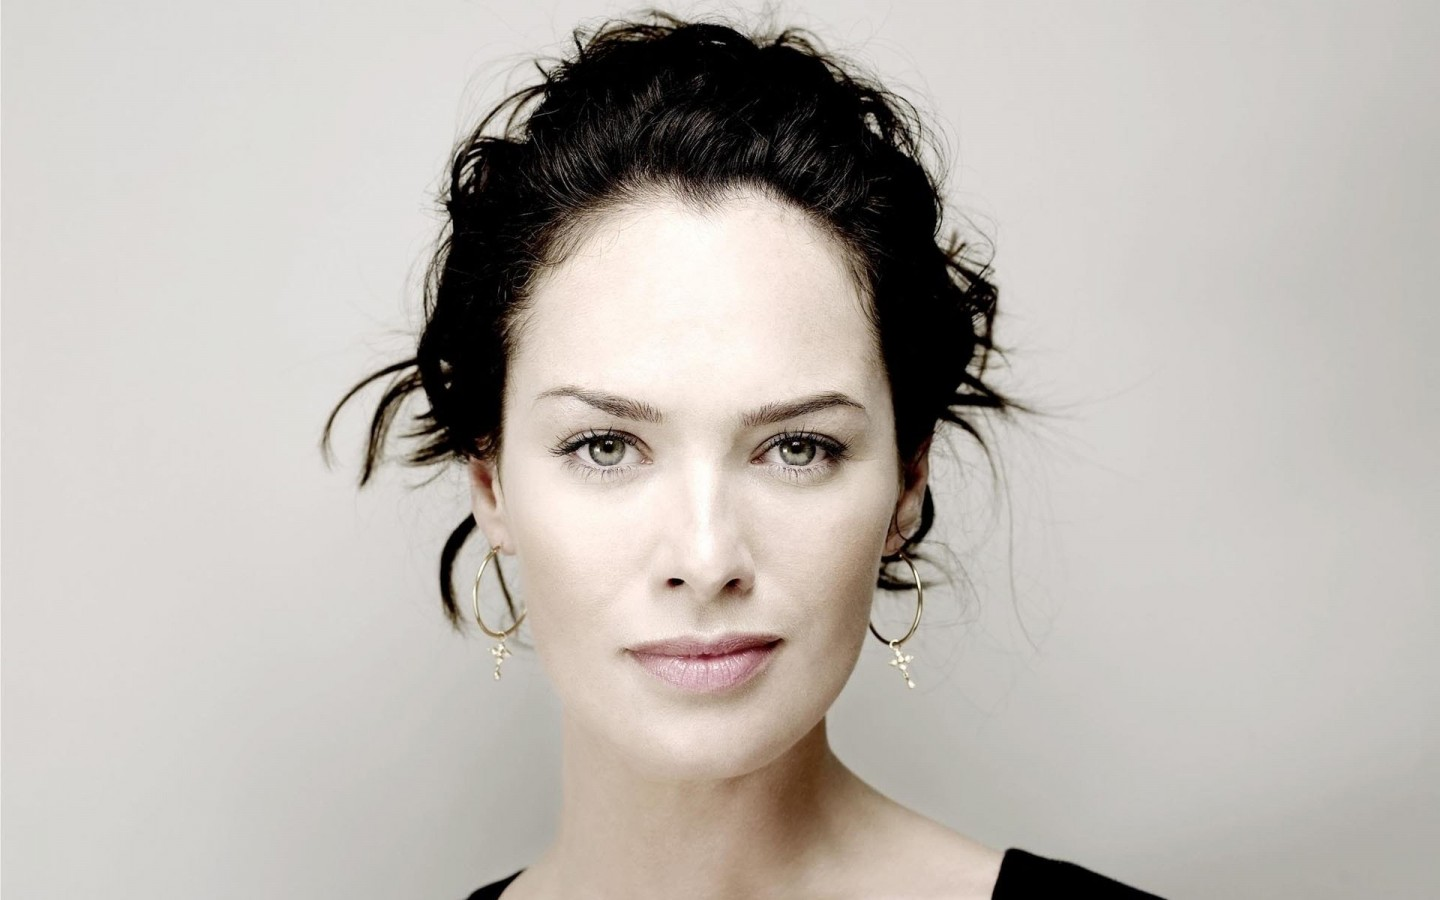 Lena Headey Portrait Wallpaper for Desktop 1440x900